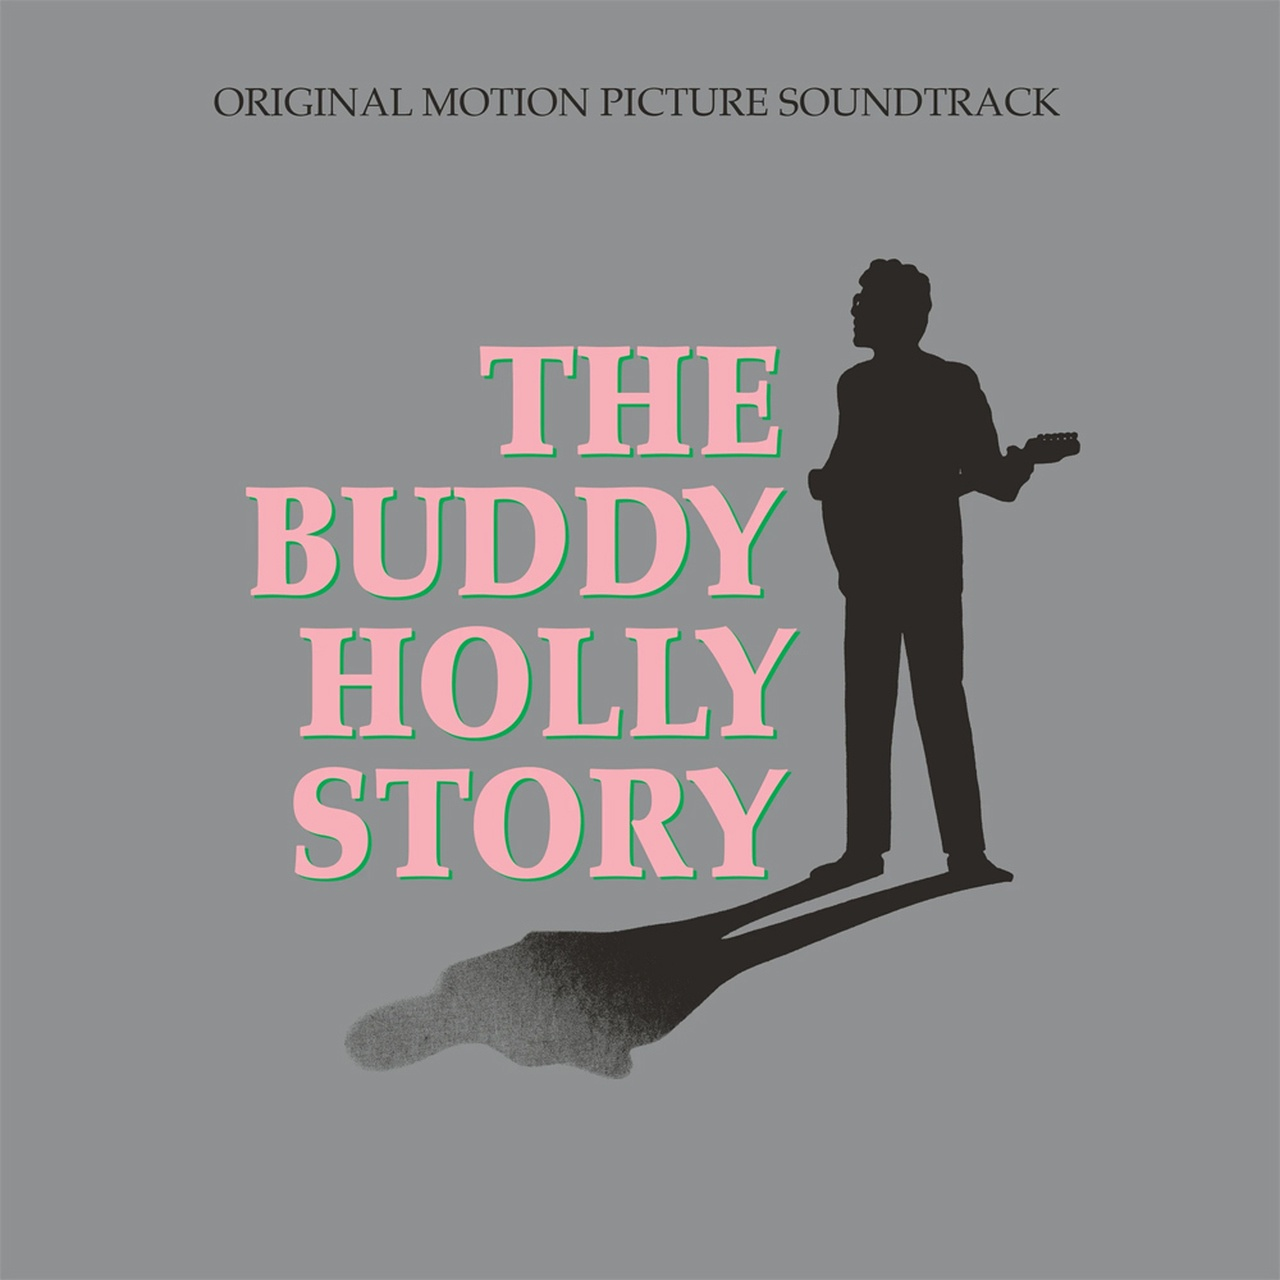 VARIOUS - THE BUDDY HOLLY STORY